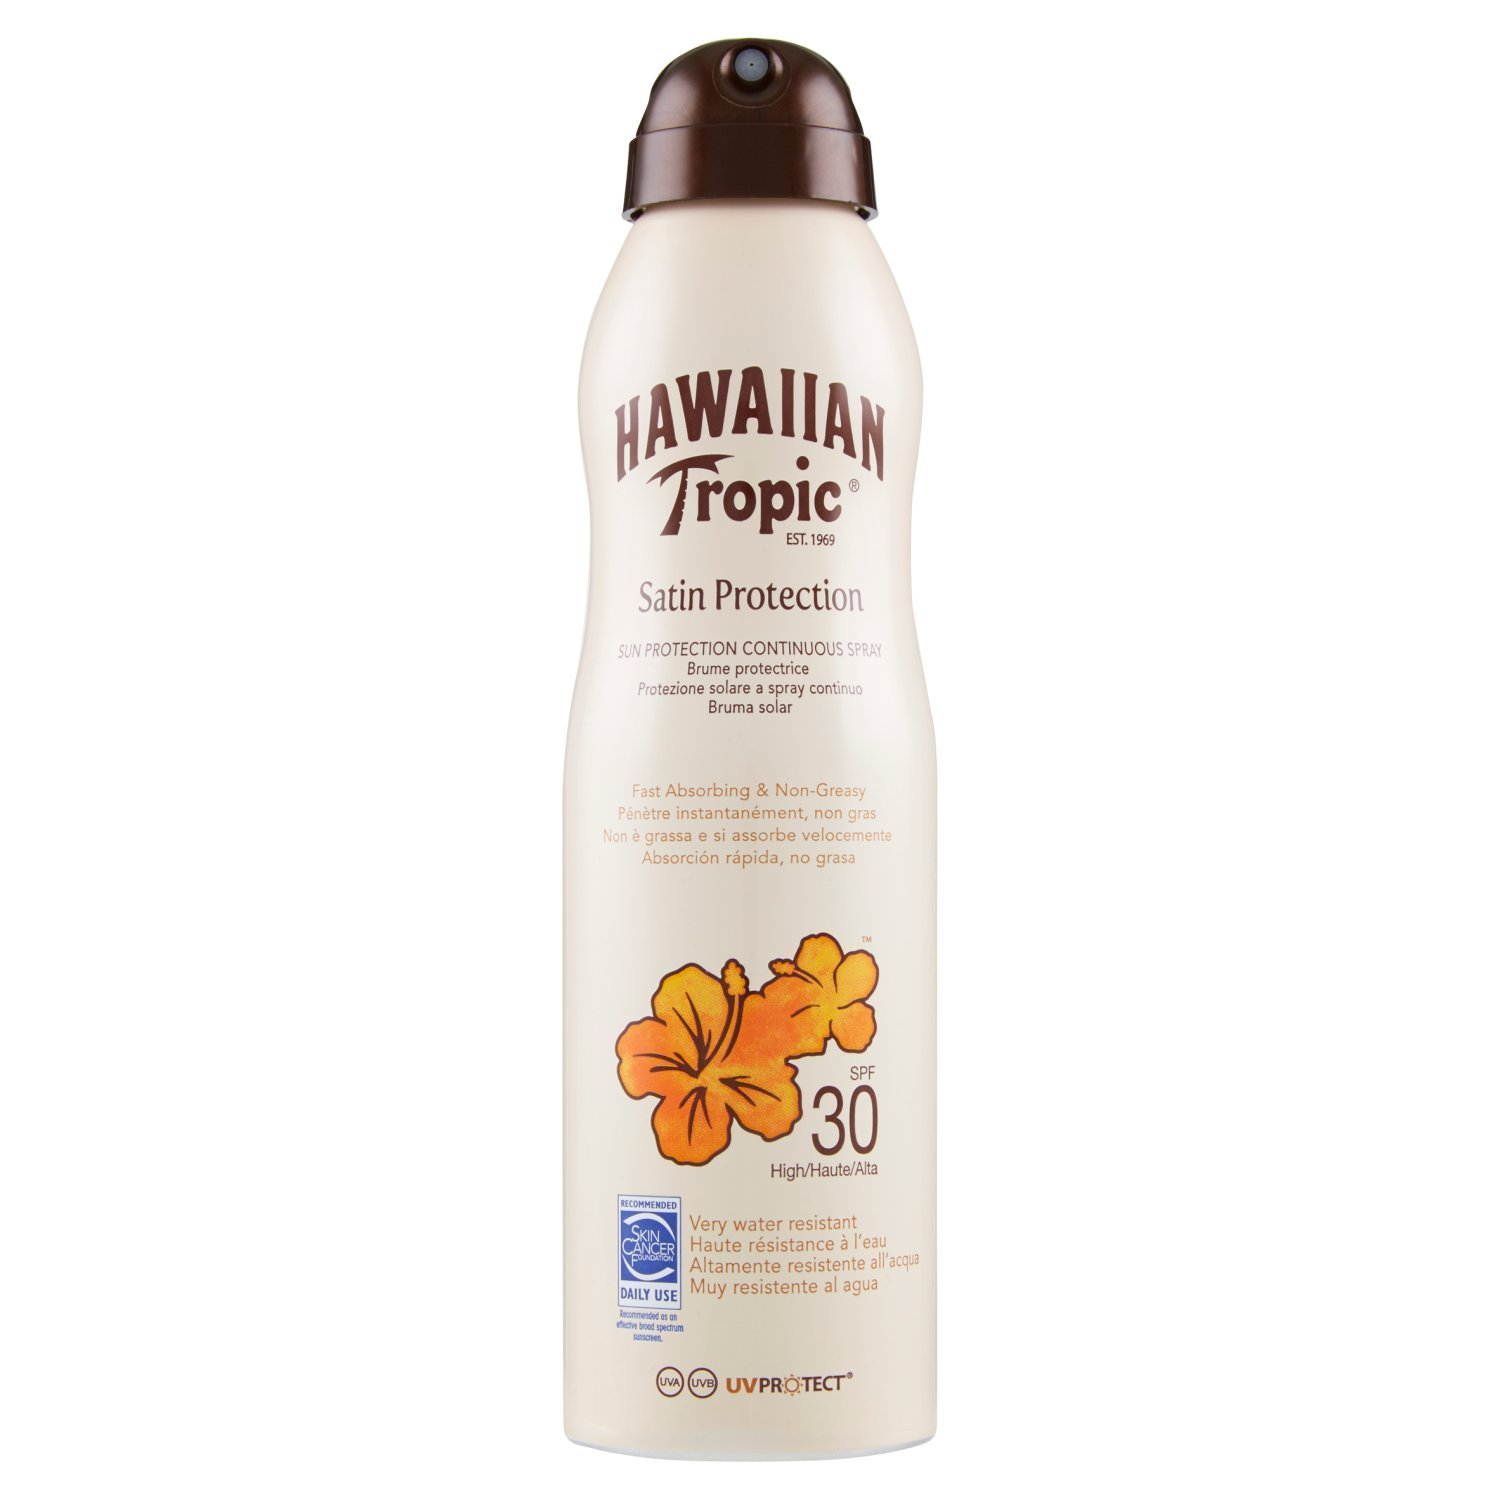 Hawaiian Tropic Brume Lotion Protectrice Satin SPF 30 - 220mL Y300636200